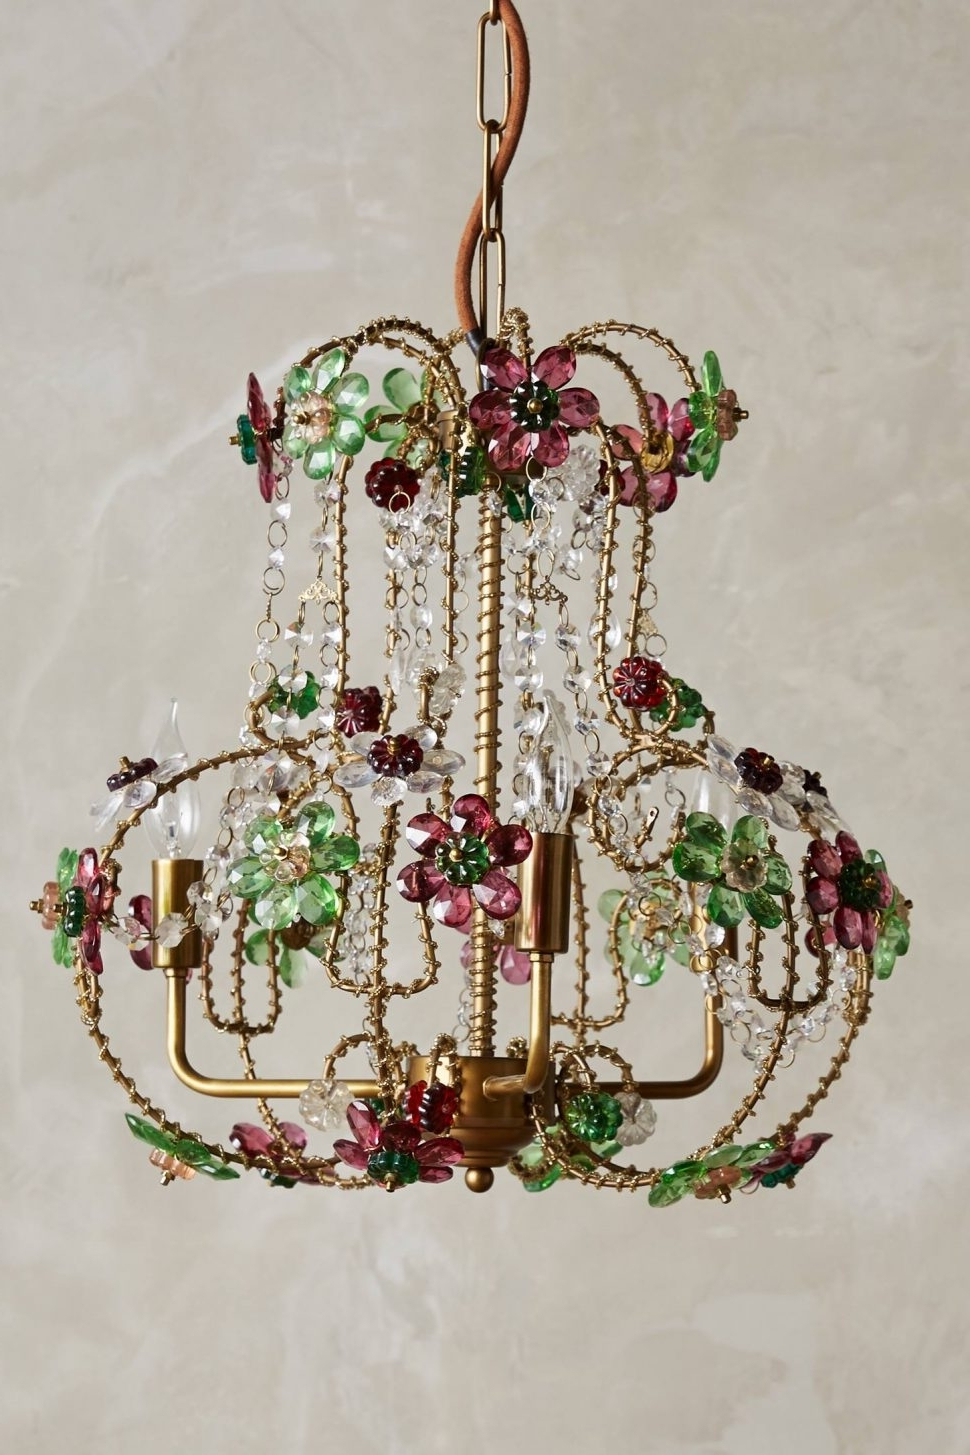 Well Known Coloured Glass Chandelier For Chandeliers Design : Wonderful Colorful Chandeliers Laurel Loves Via (View 11 of 15)